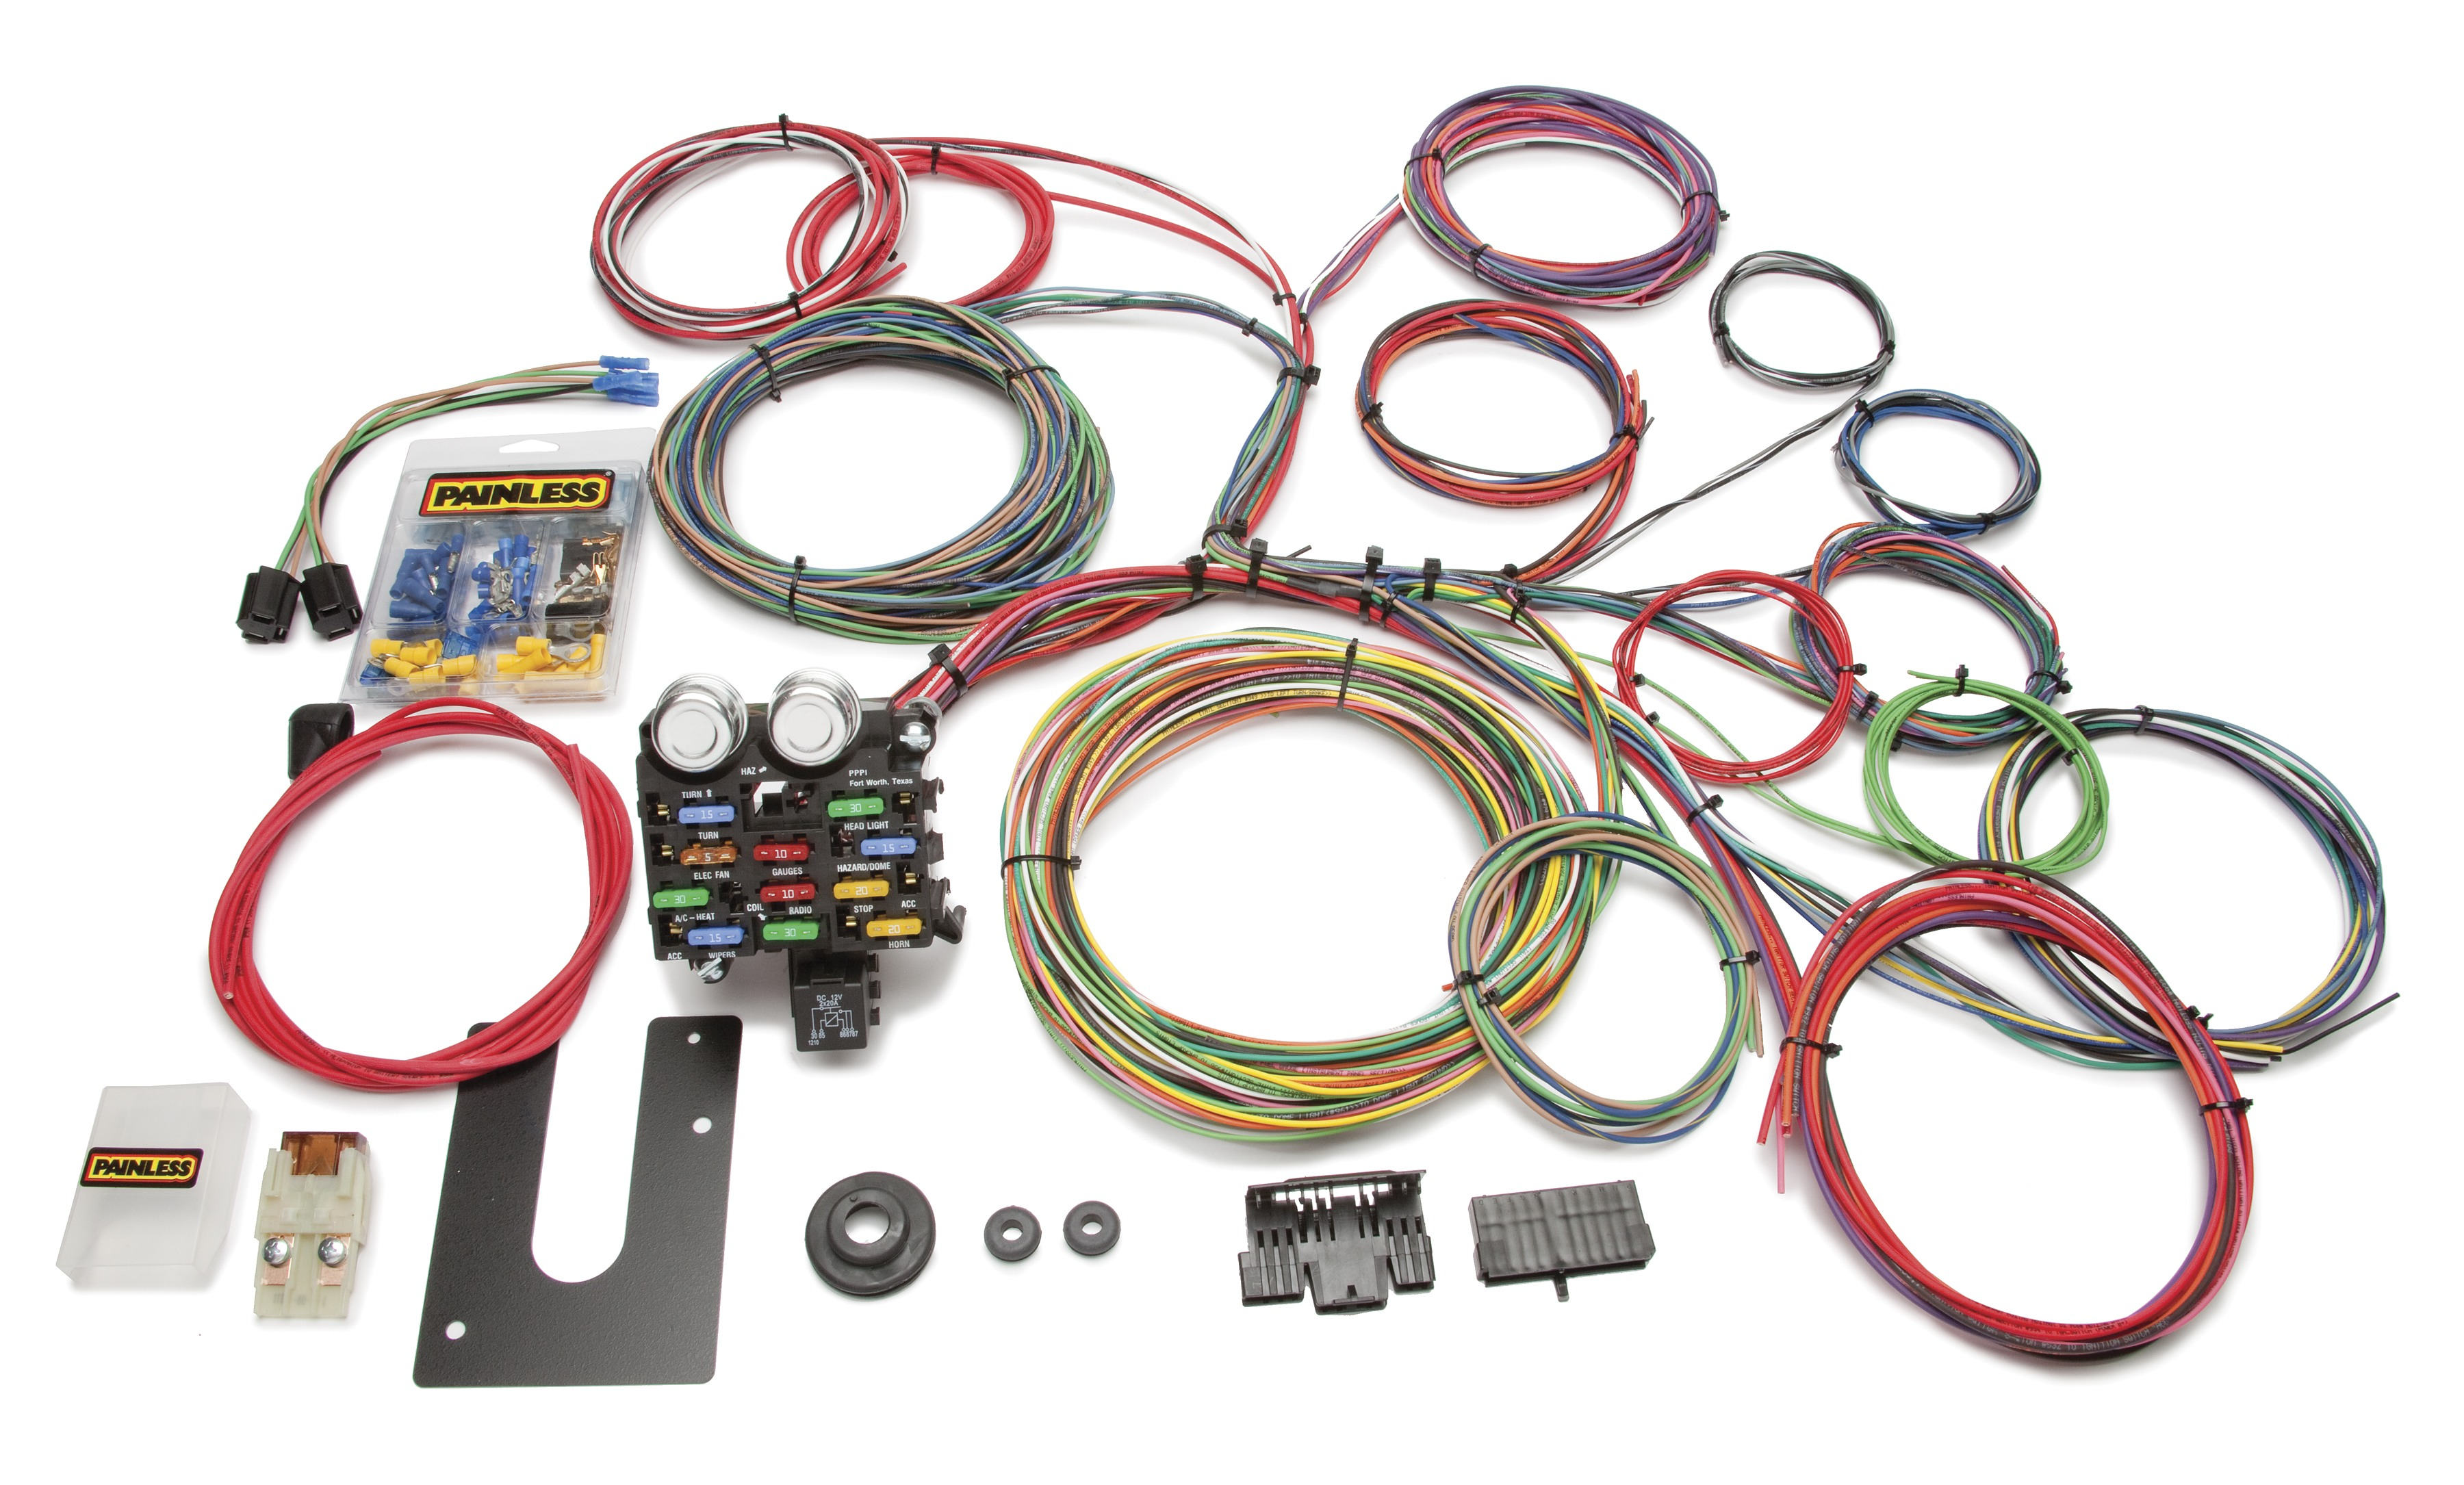 new at summit racing equipment painless performance chassis painless performance 21 circuit universal wiring harness